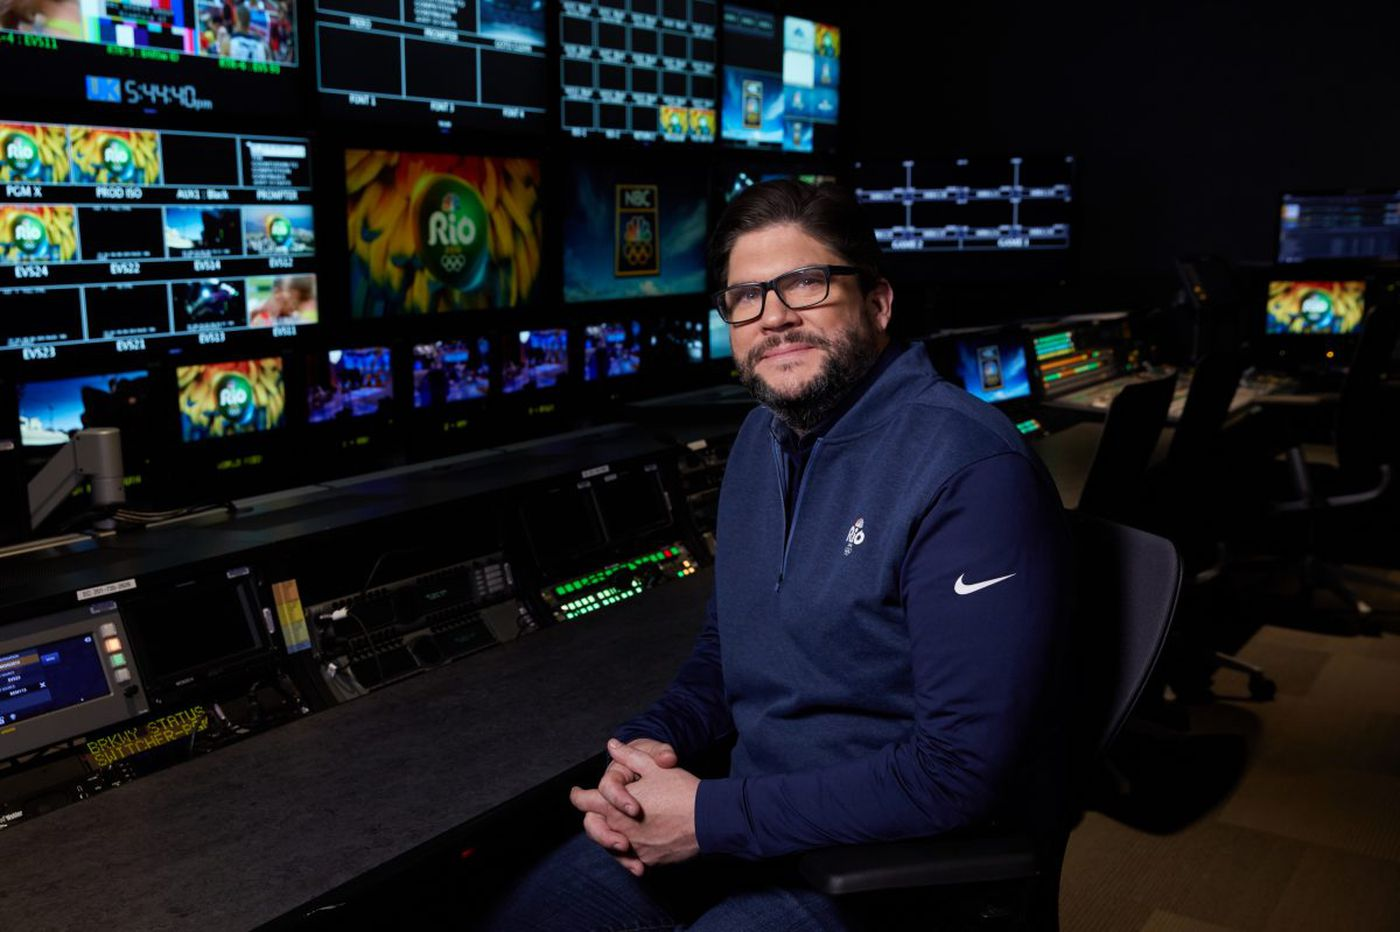 Jim Bell brings NBC's Olympics experience to Telemundo's World Cup broadcasts